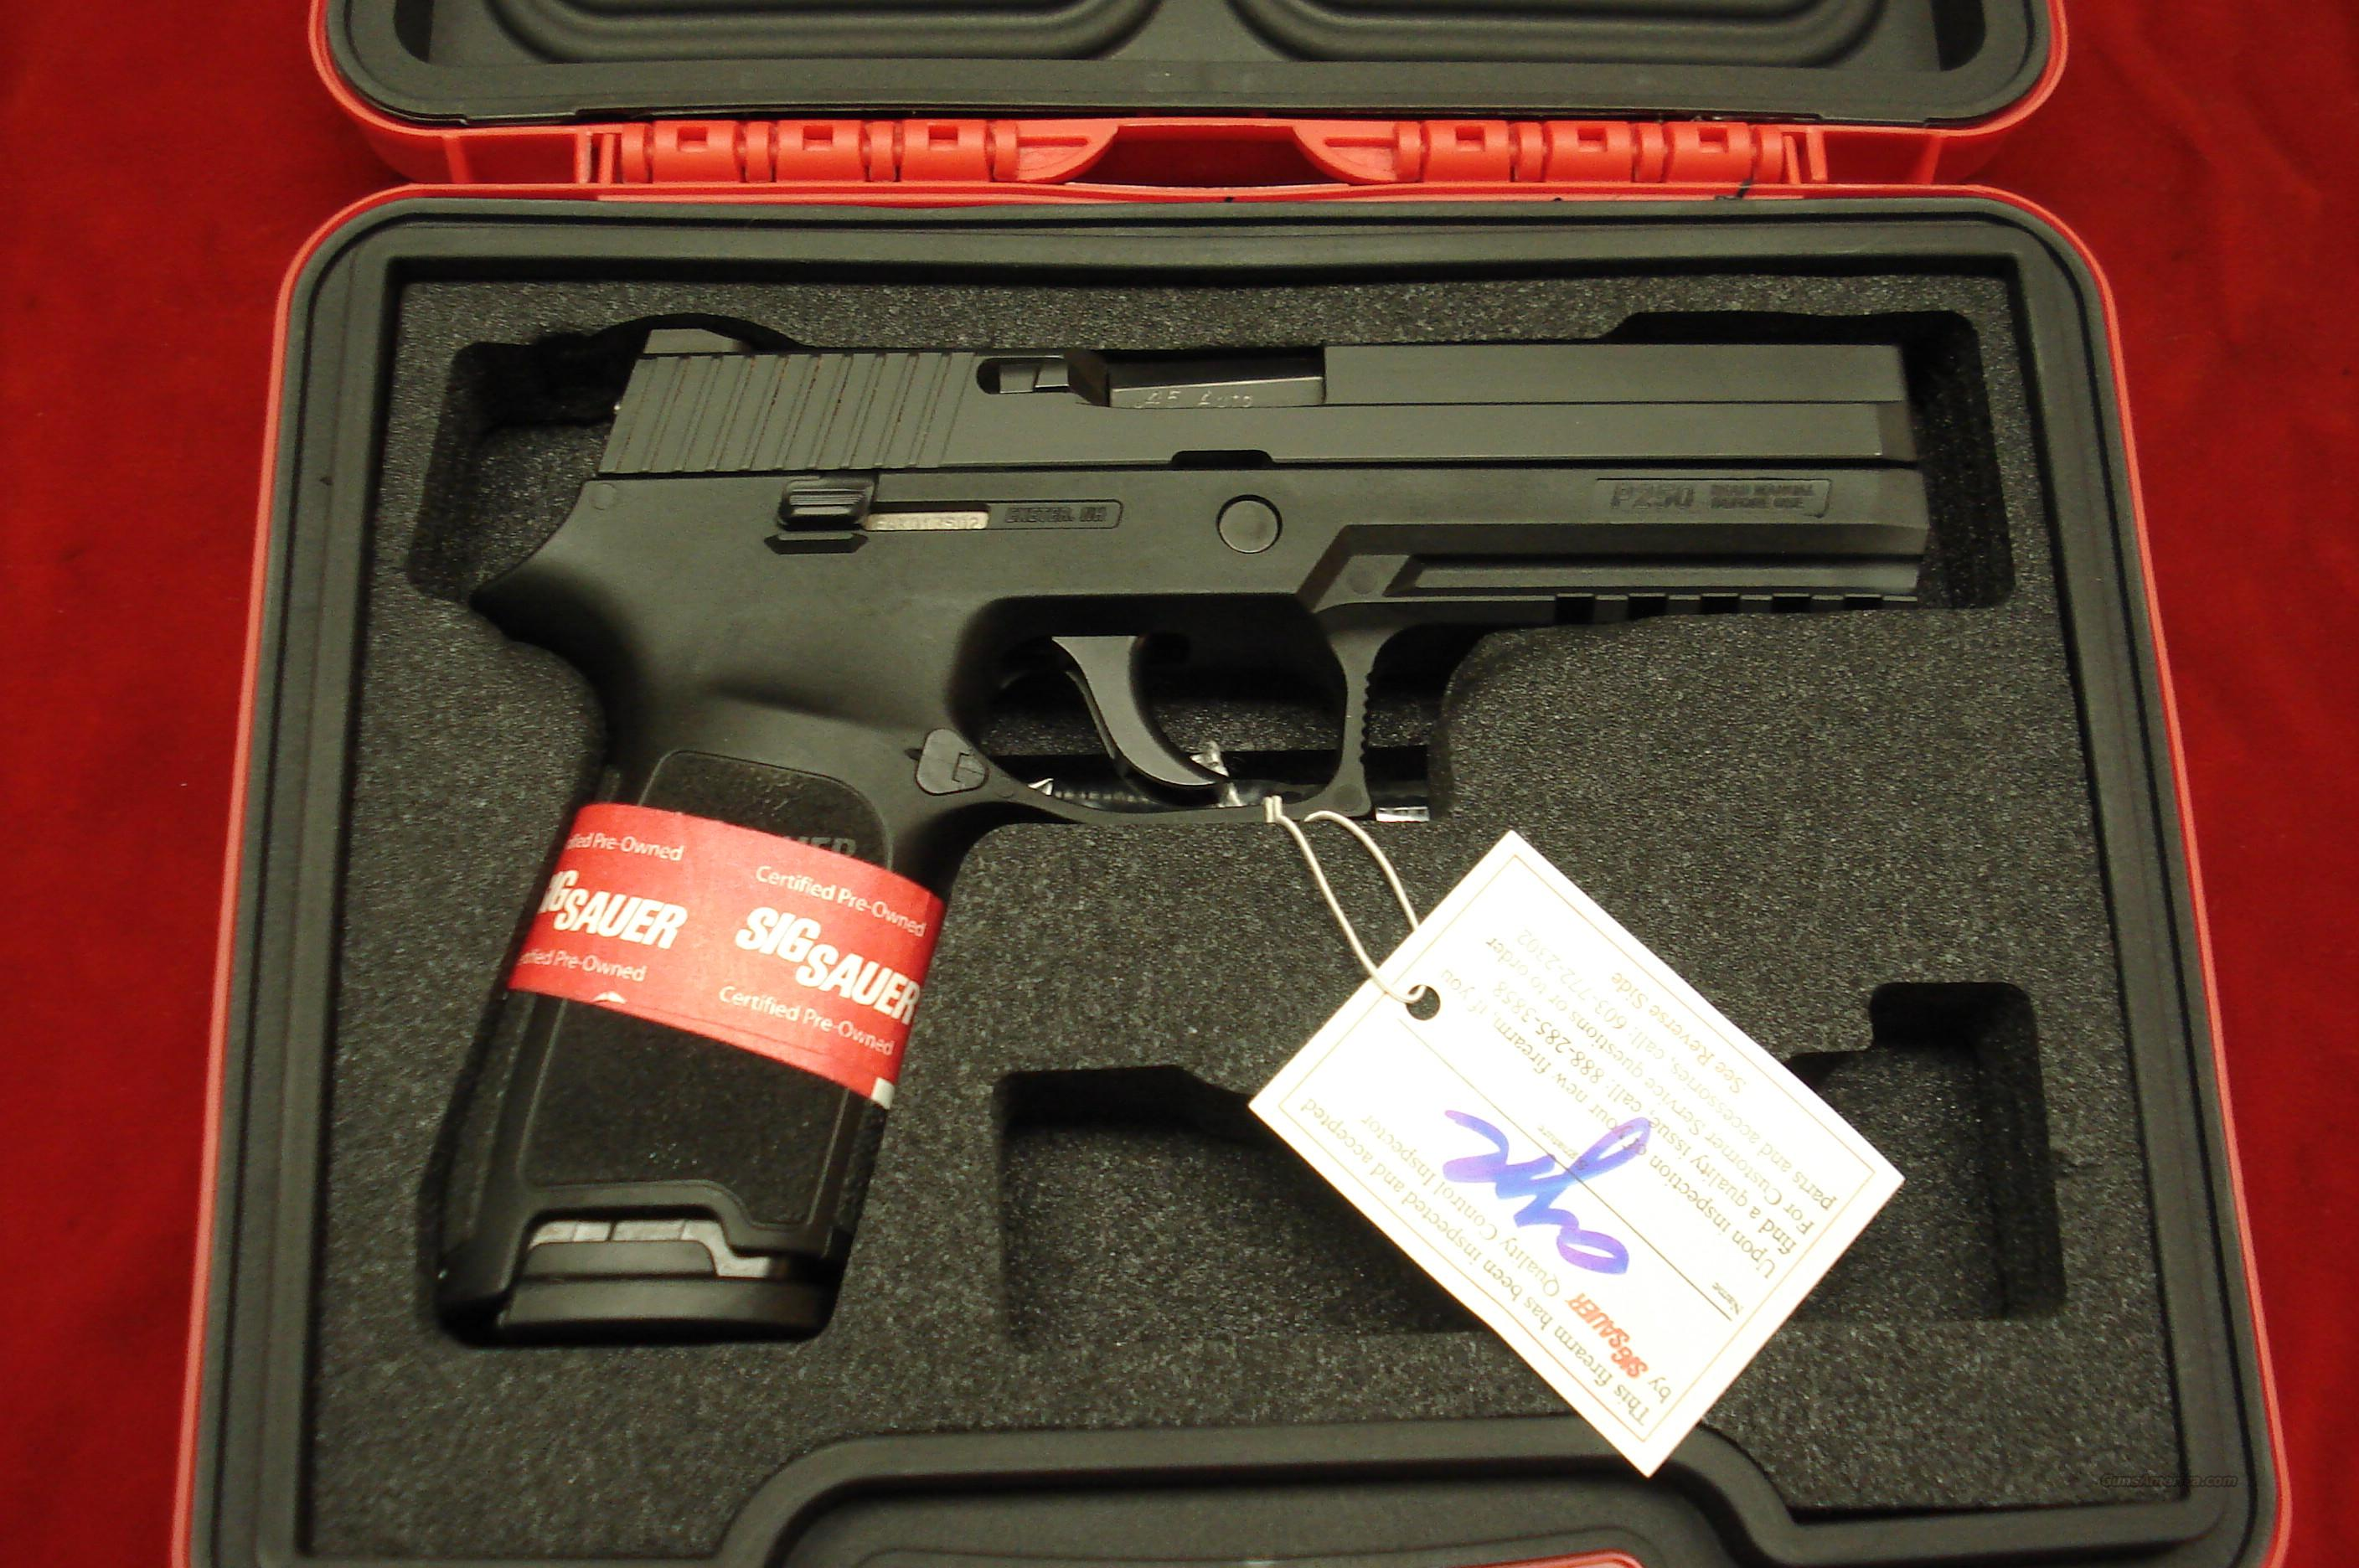 SIG P250 45ACP  W/NIGHT SIGHTS CERTIFIED PREOWNED   Guns > Pistols > Sig - Sauer/Sigarms Pistols > P250